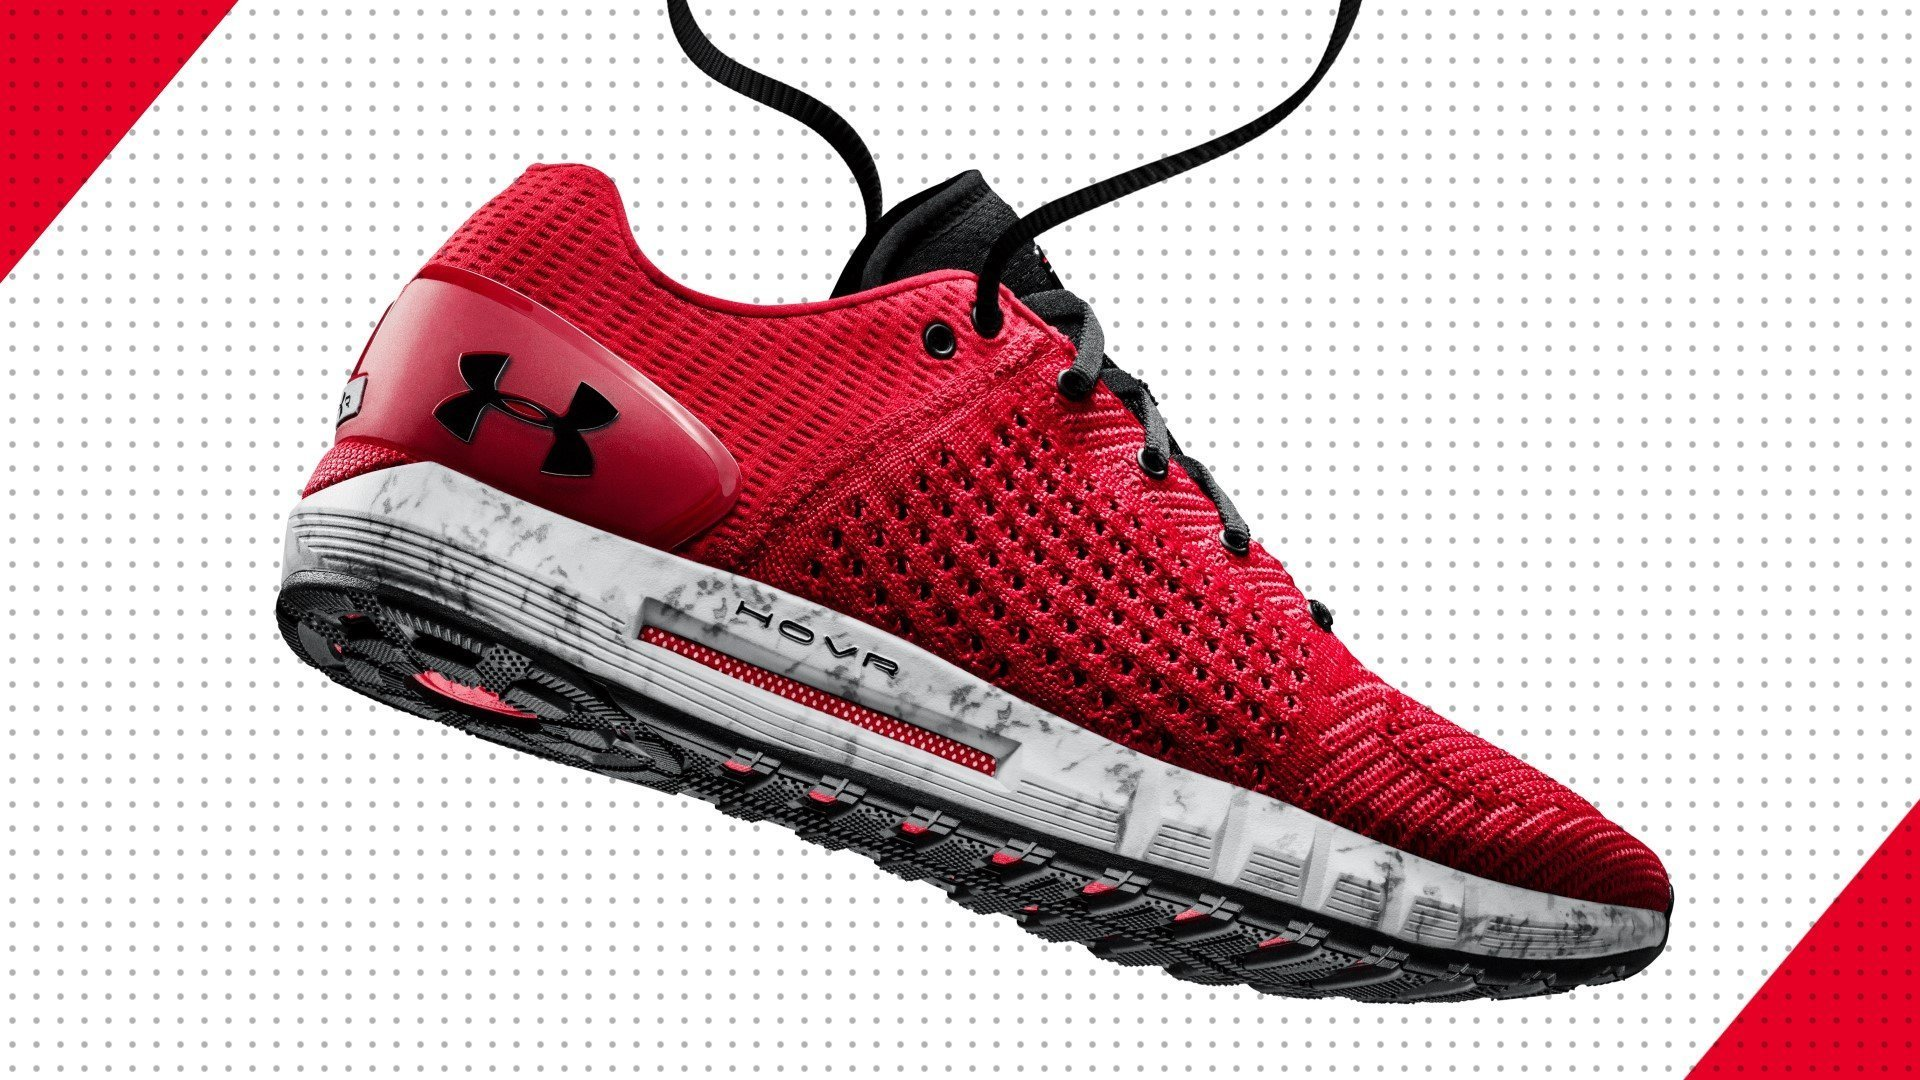 Under Armour HOVR Smart Shoes